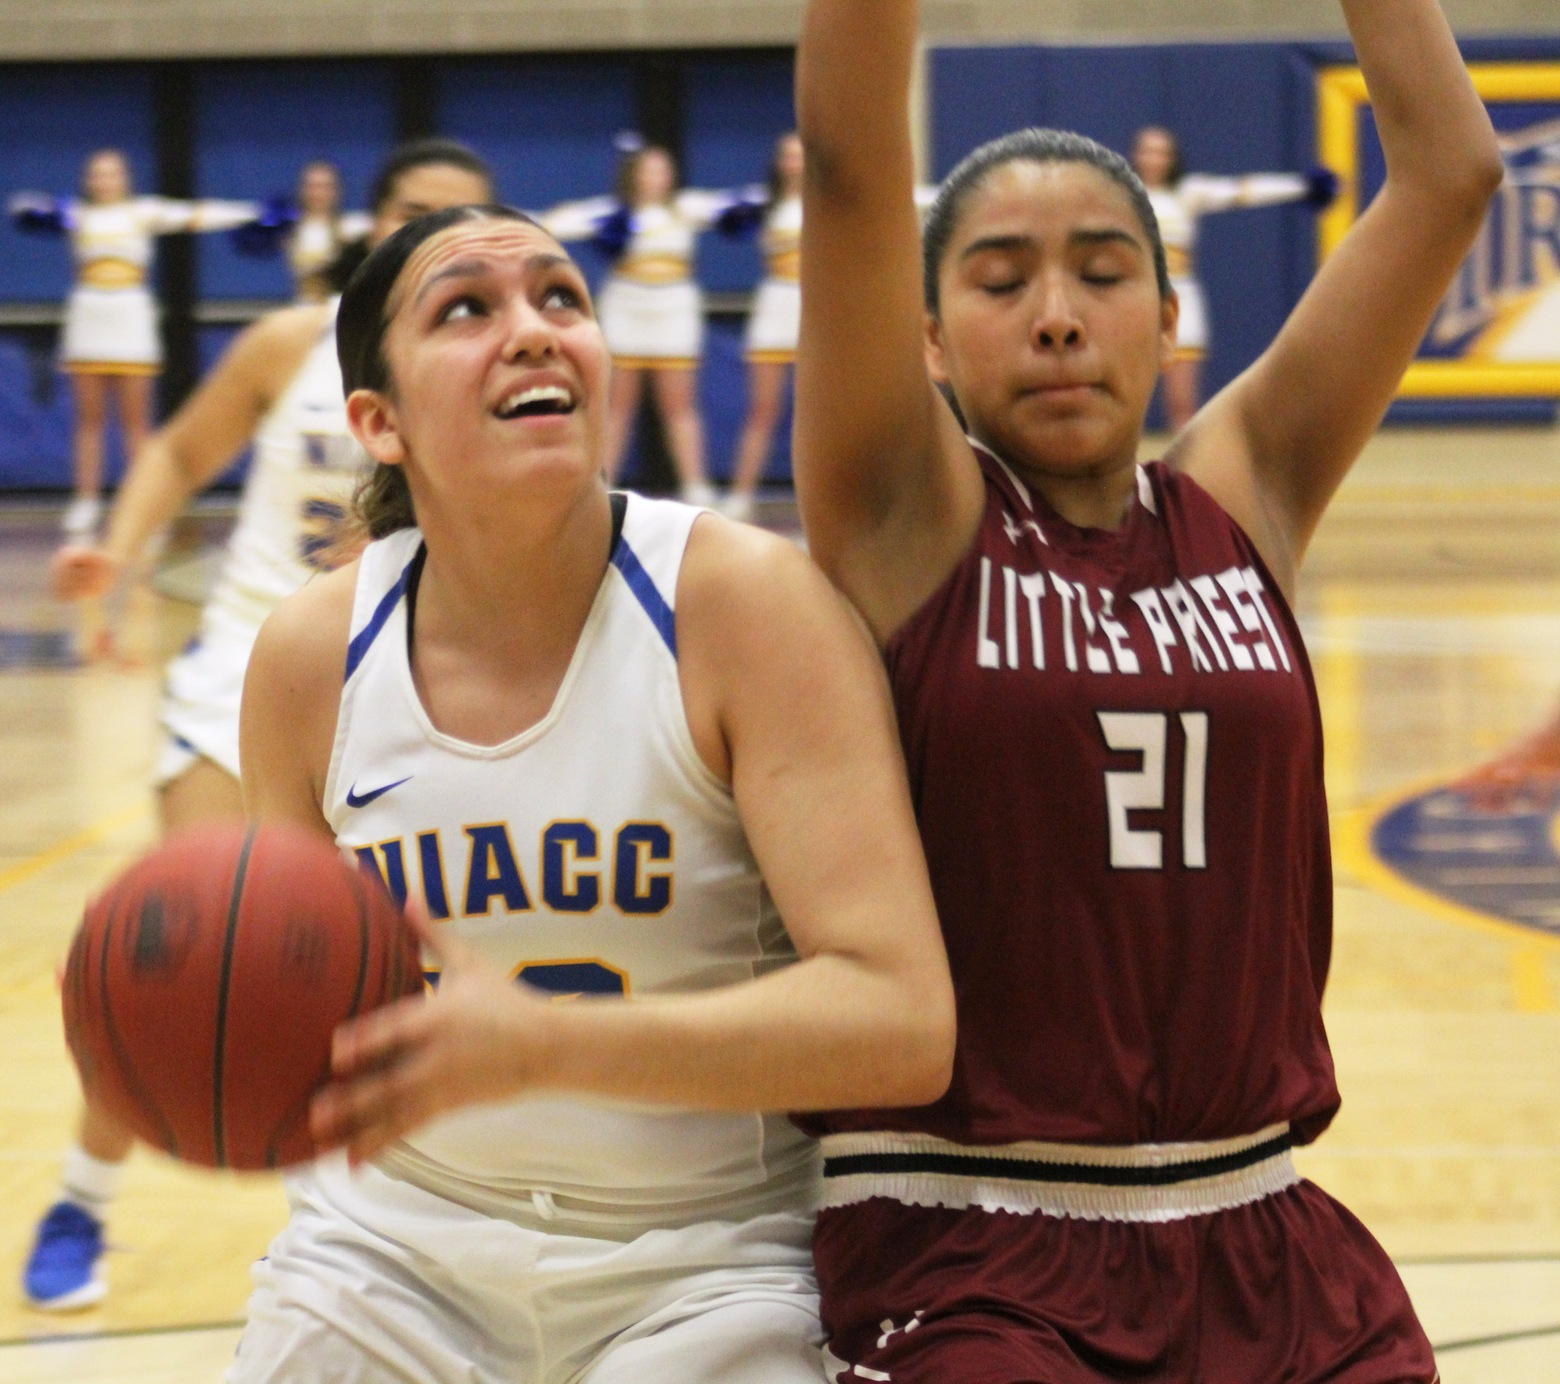 Autam Mendez led the Lady Trojans with 26 points and 16 rebounds on Wednesday.